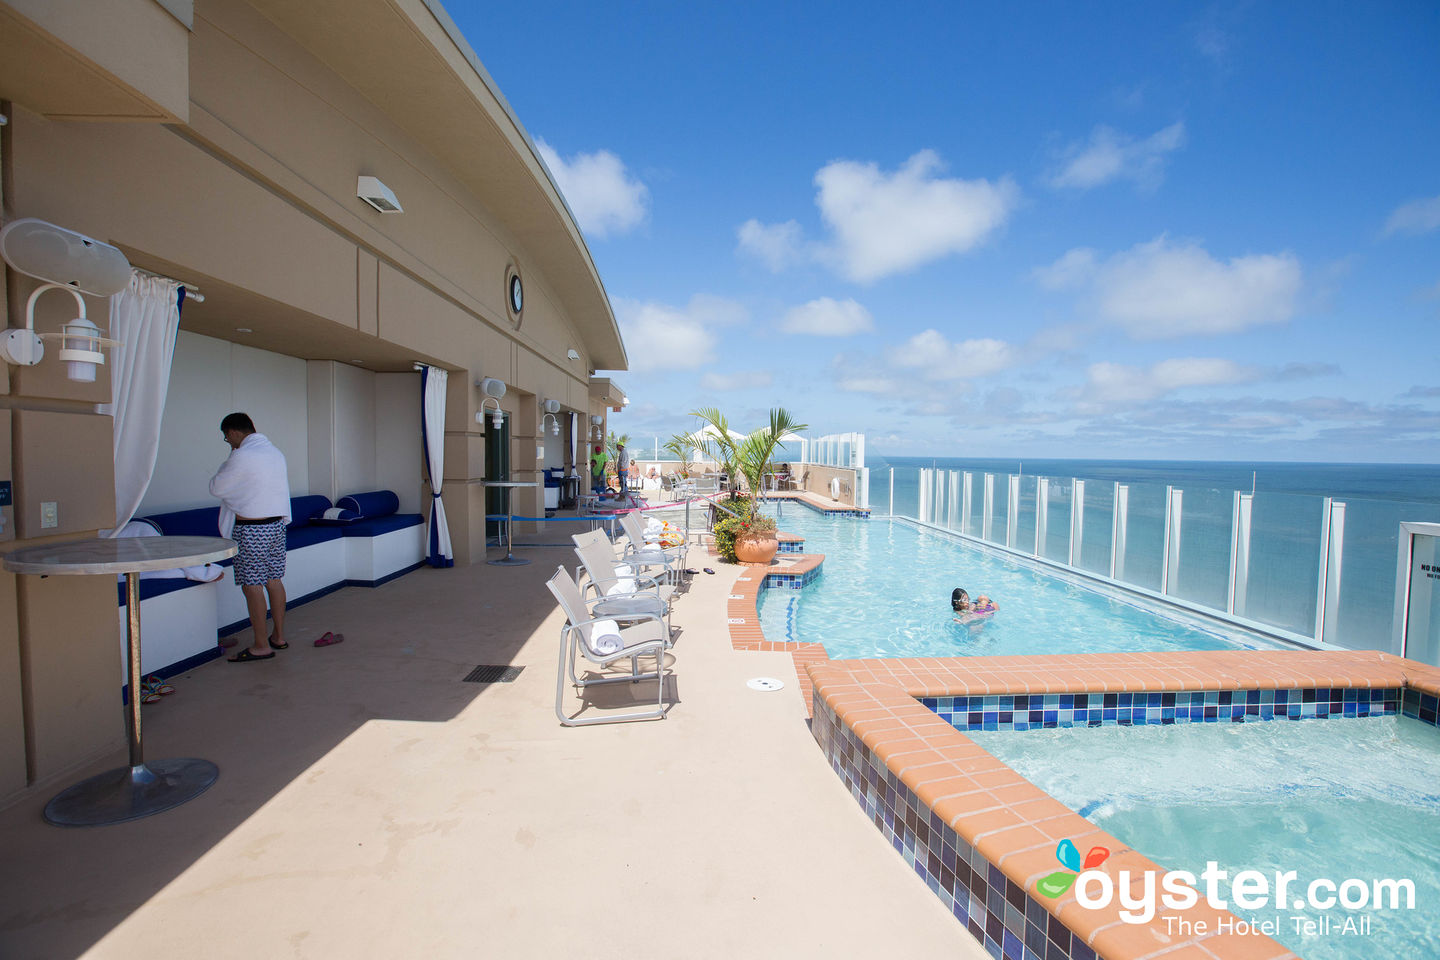 Hilton Virginia Beach Oceanfront Review What To Really Expect If You Stay